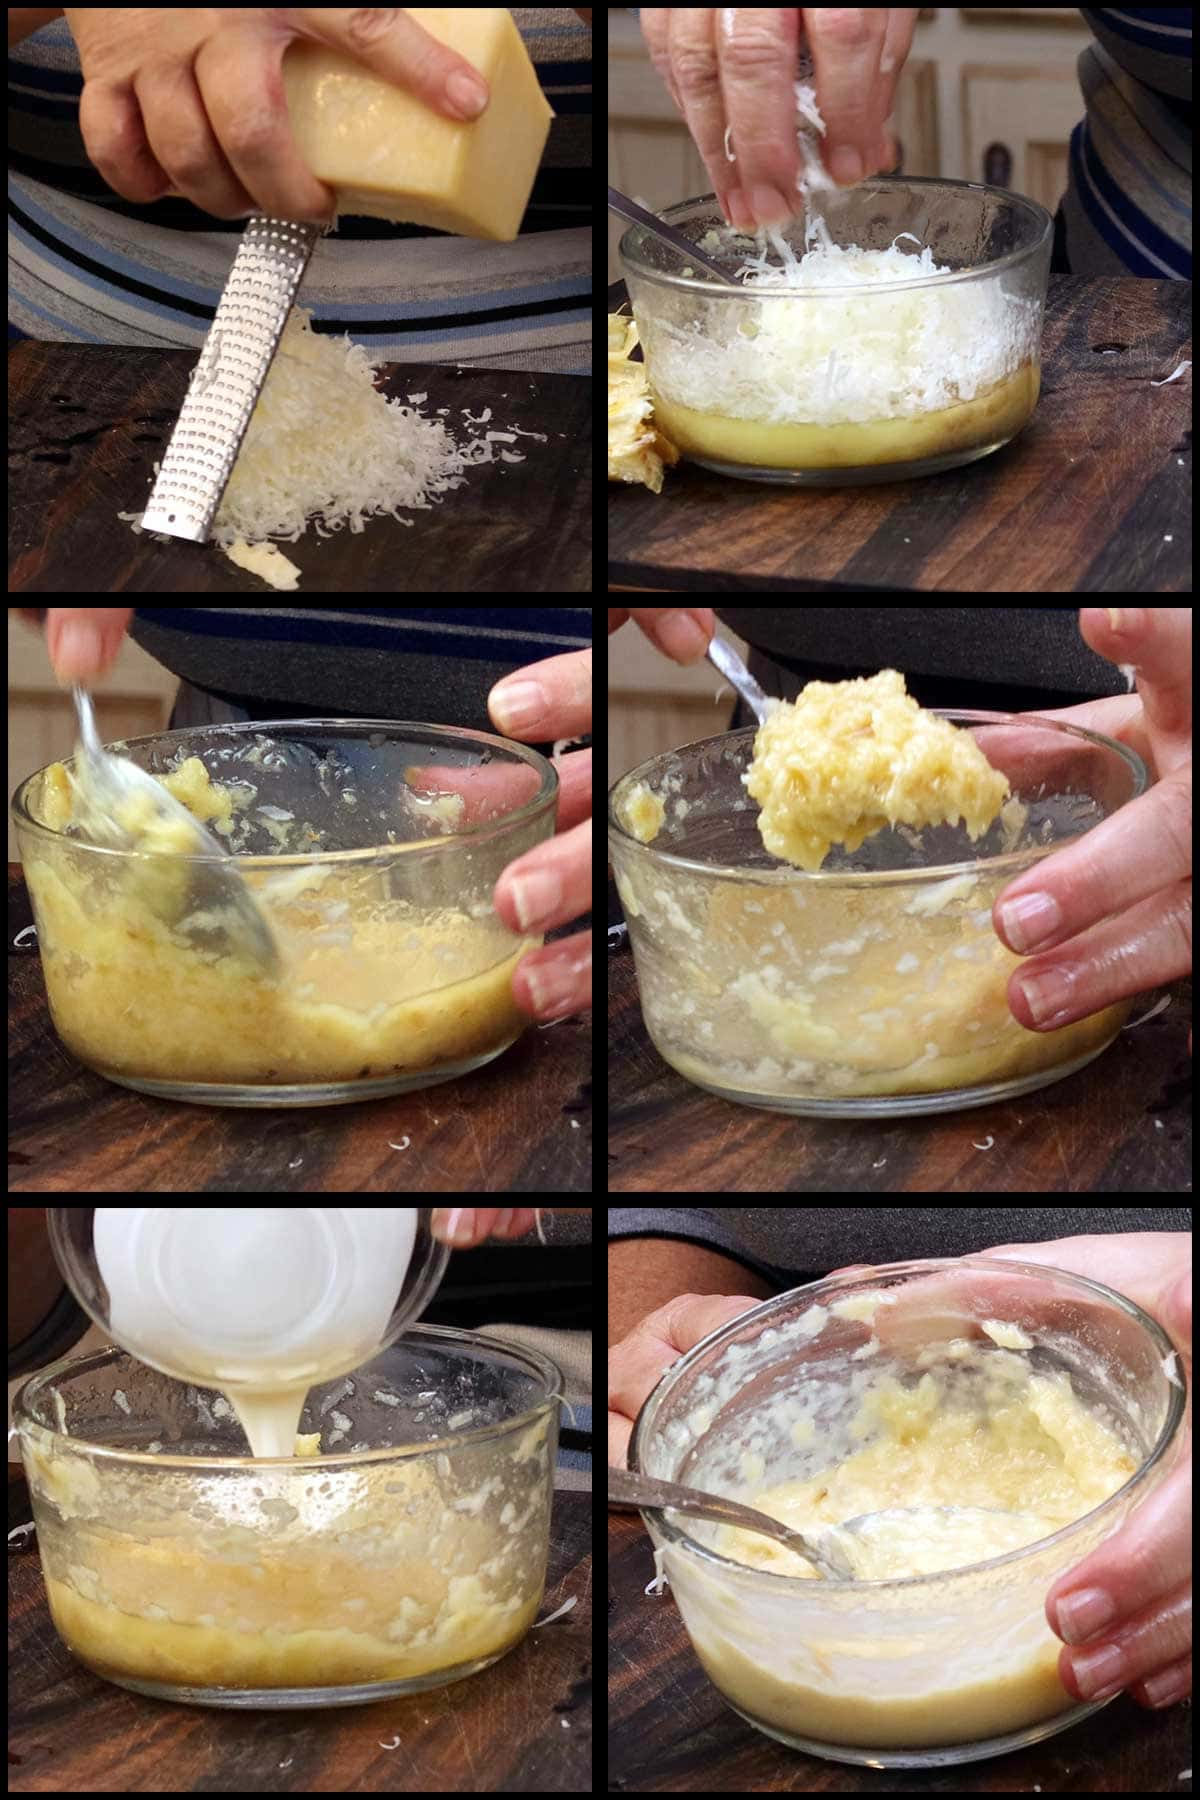 Adding cheese and cream to finish the garlic parmesan sauce